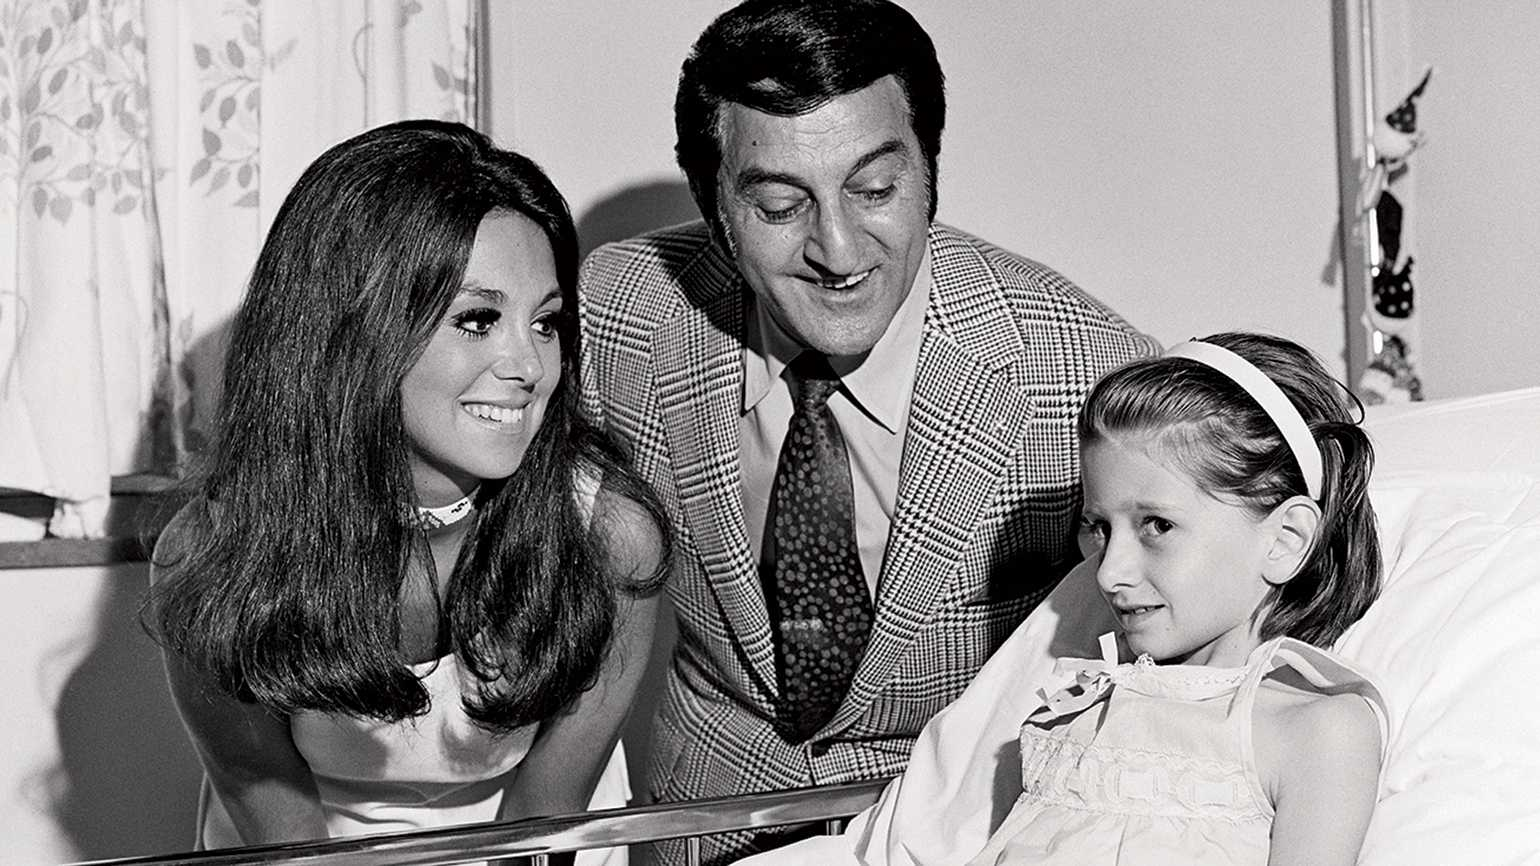 Marlo and her father visit one of the young patients at St. Jude's